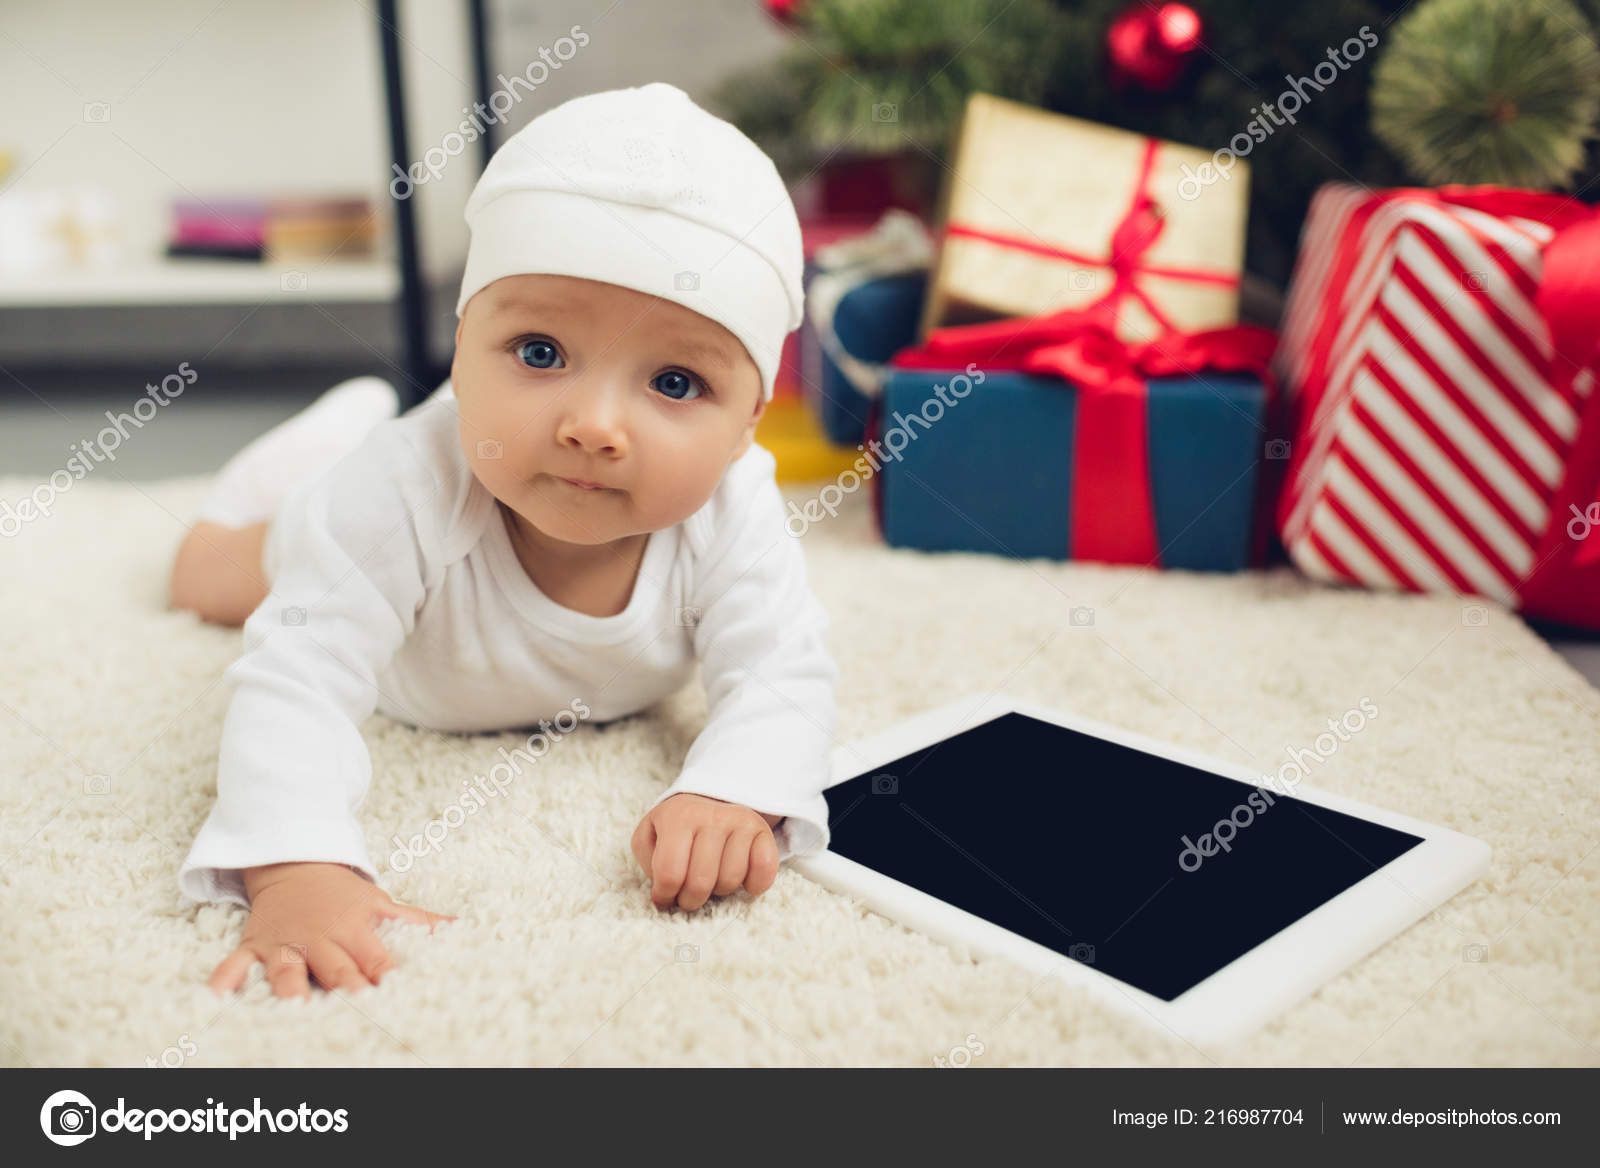 Cute Little Baby Tablet Lying Floor Christmas Gifts Blurred ...